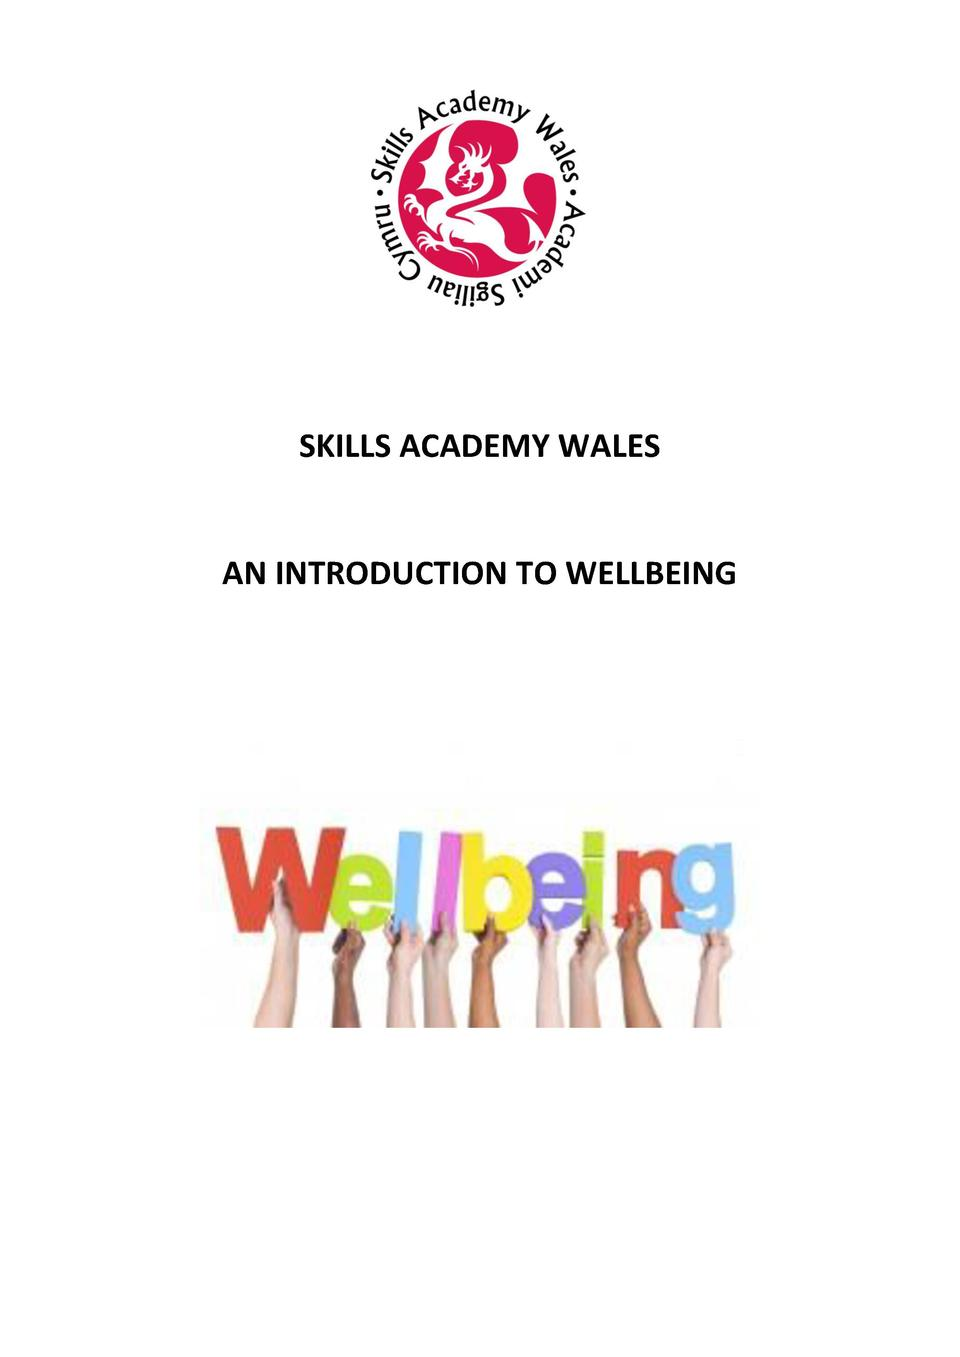 SKILLS ACADEMY WALES  AN INTRODUCTION TO WELLBEING